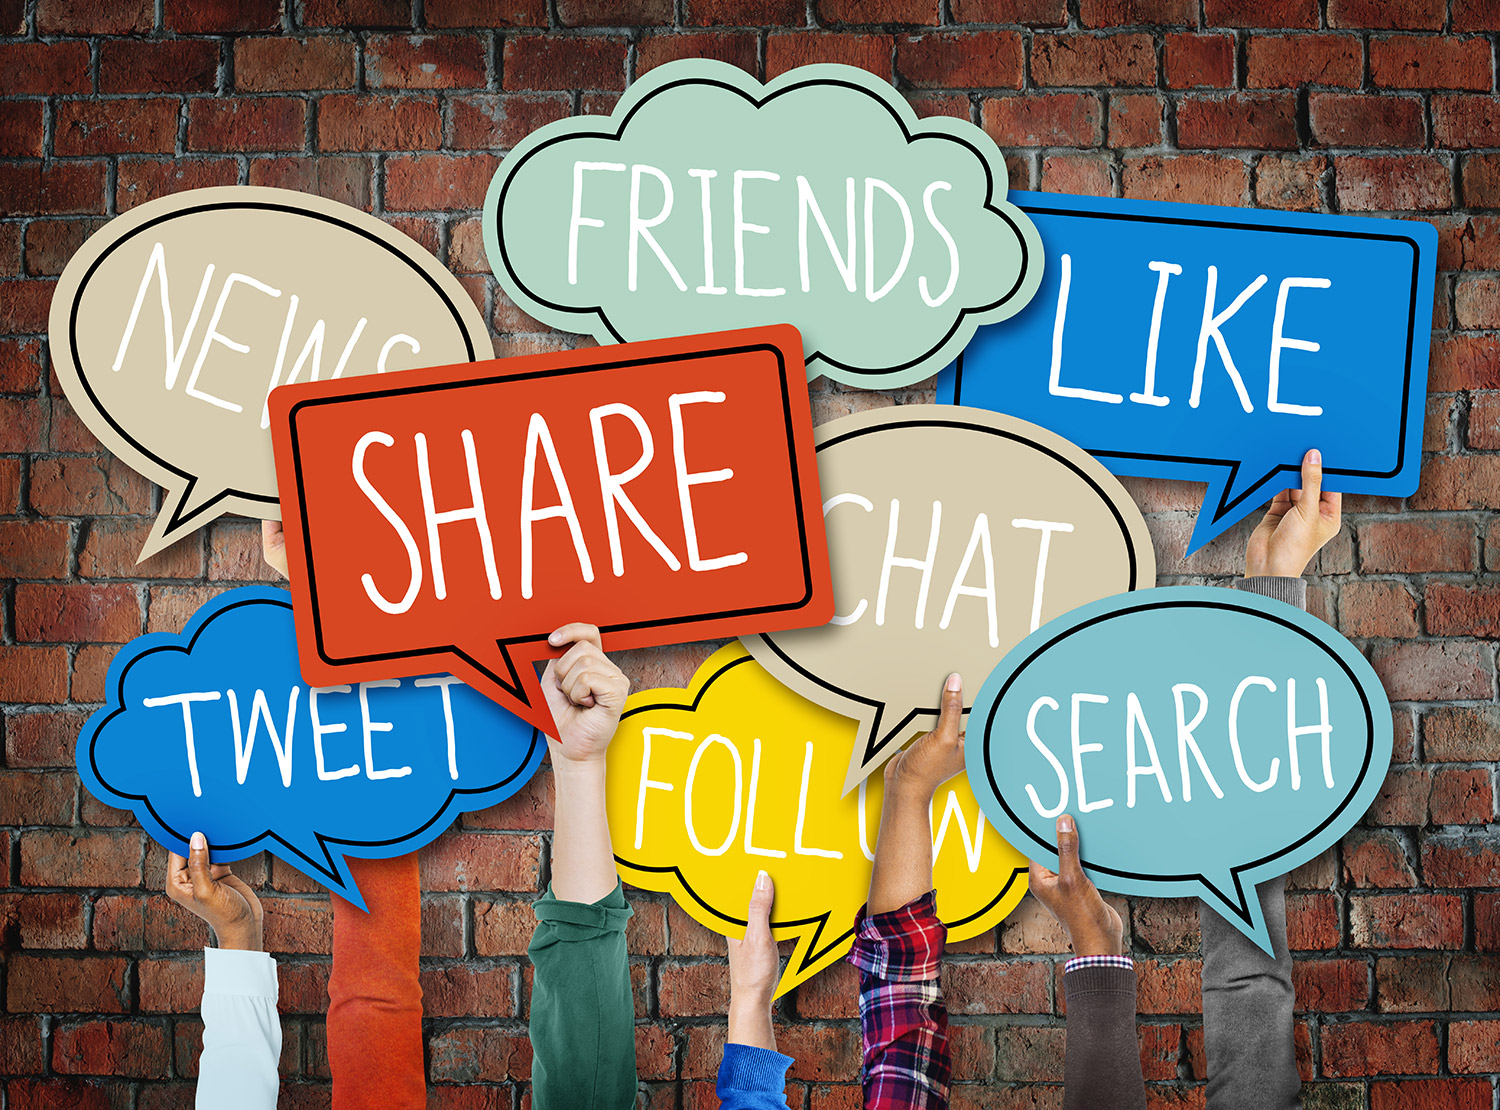 social media as a powerful tool in spreading speech and opinion Organized chaos: viral marketing, meet social media spreading the word person to person is the stuff of avon dreams — and bernie madoff nightmares and it requires the confidence to lose control.